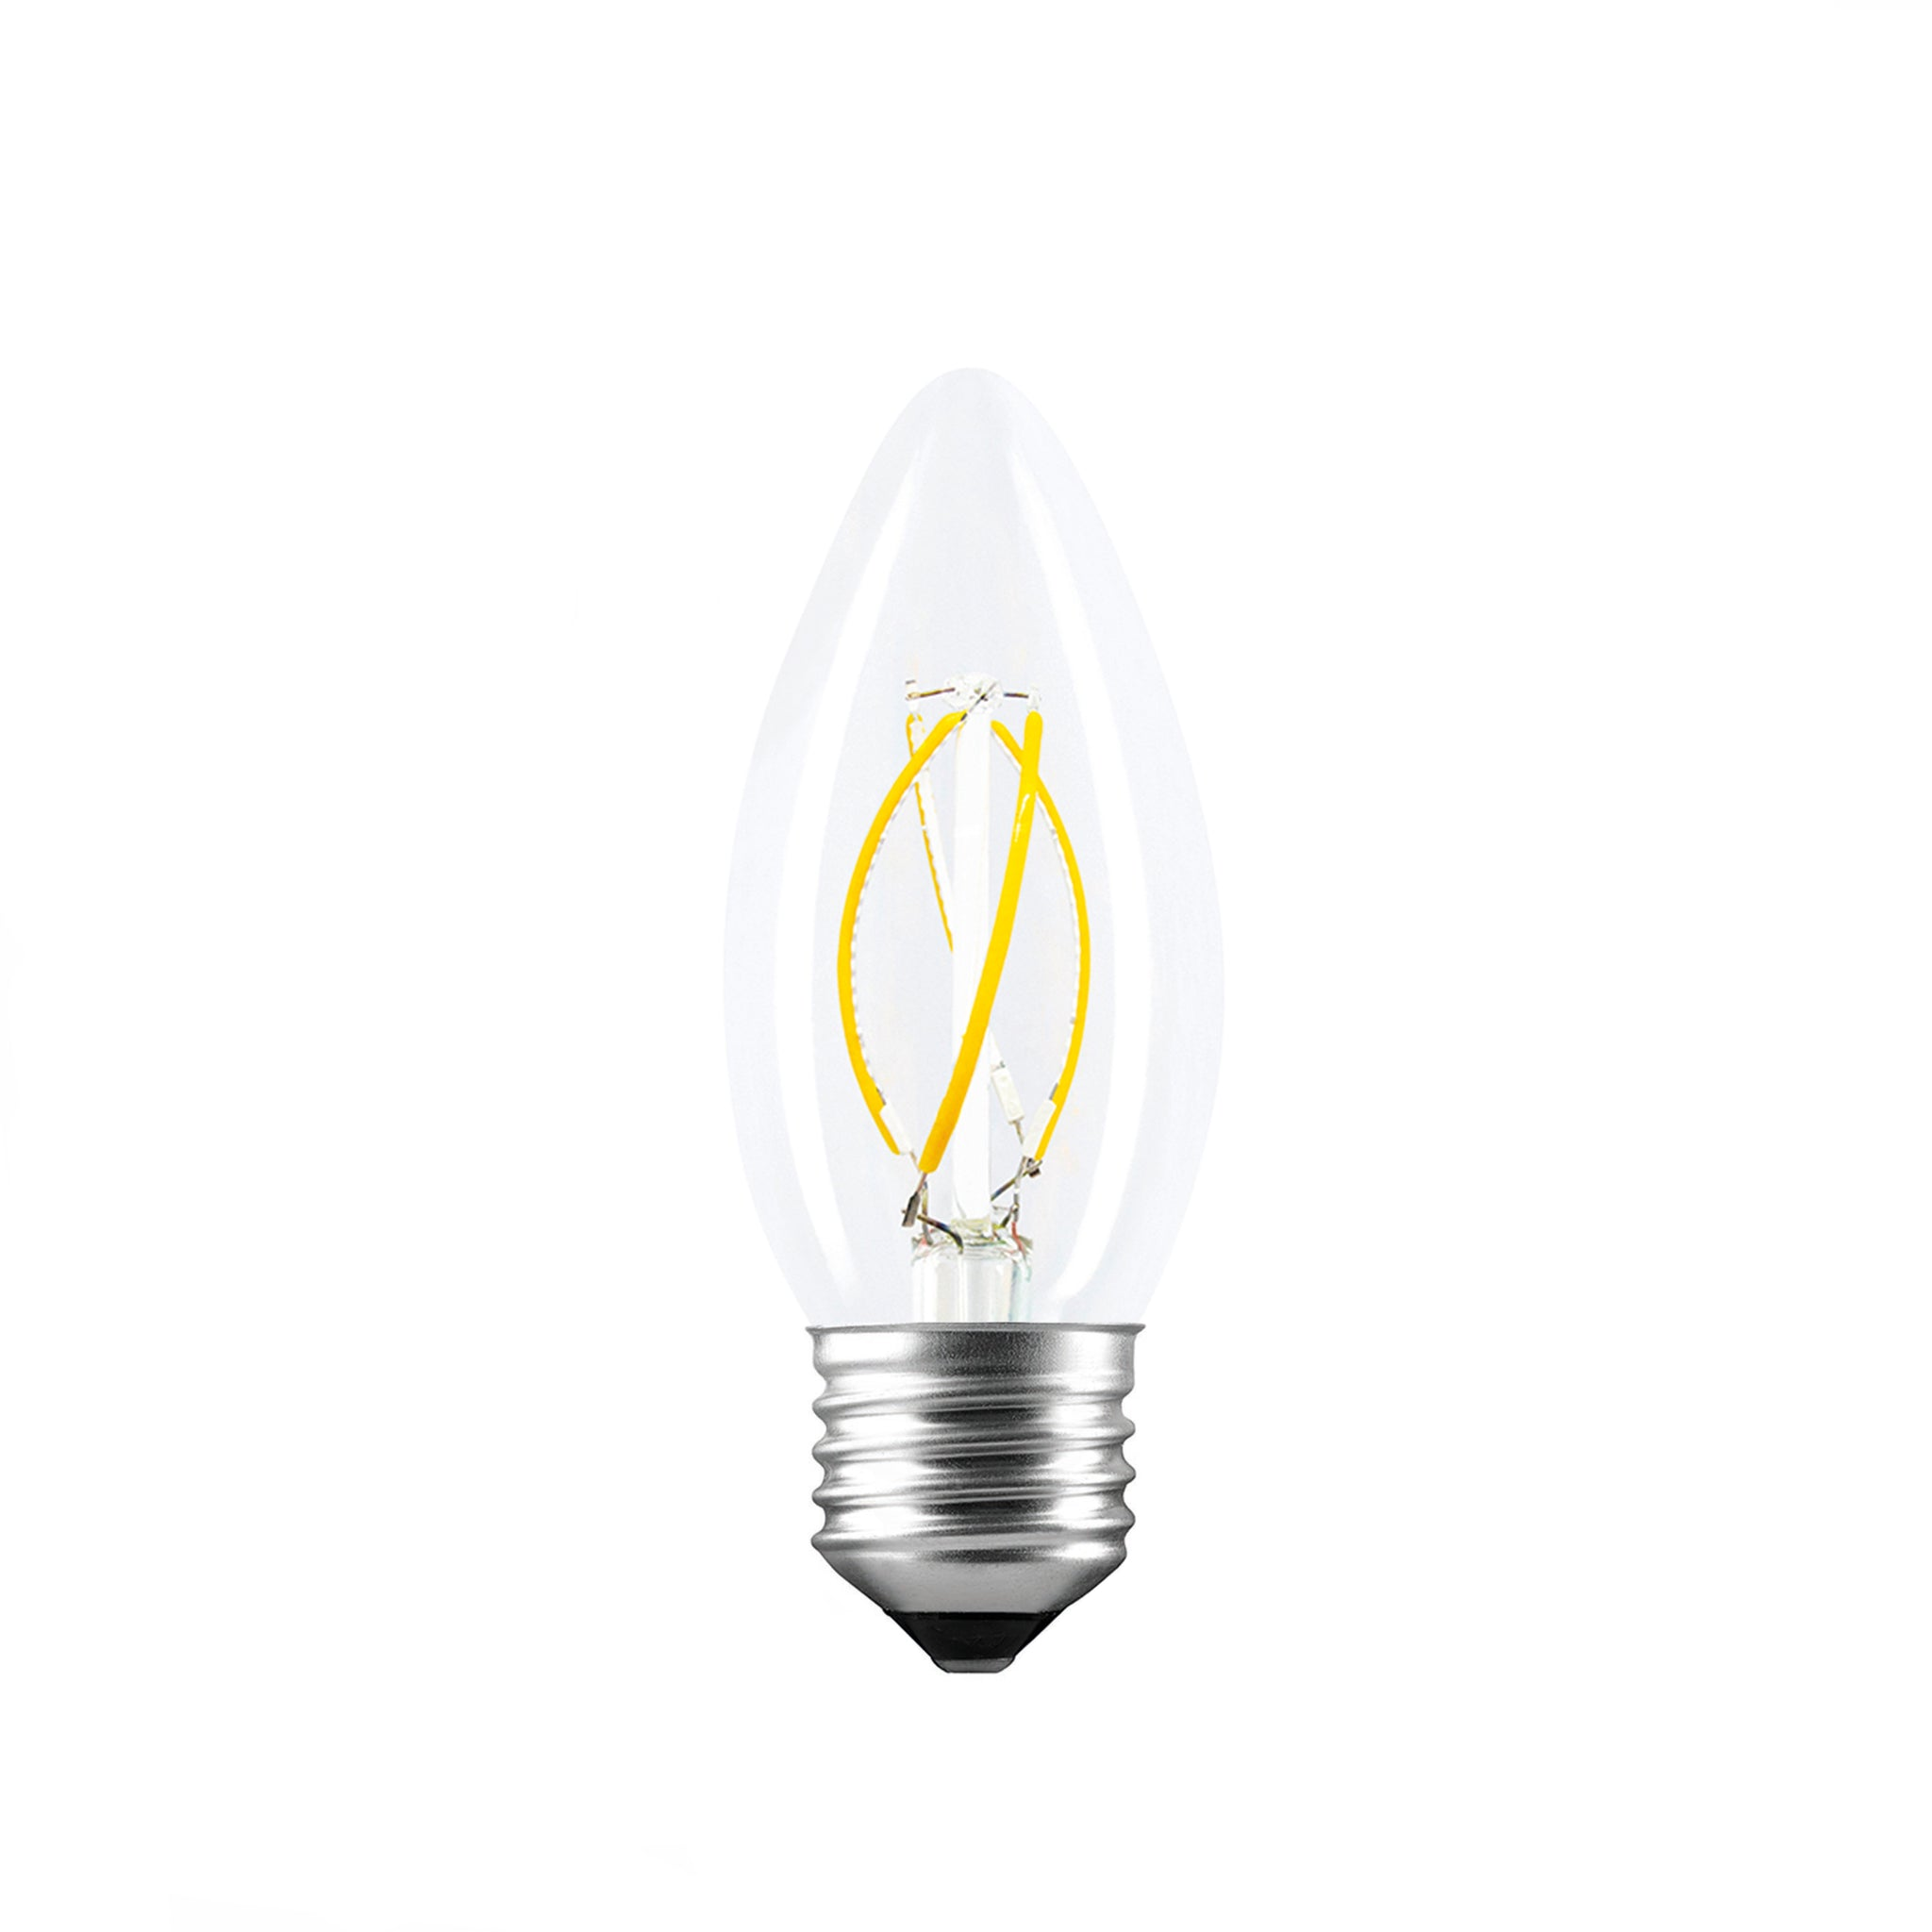 SYMSIS Graphene Candle E27 4W LED Bulb (Non-Dimmable) 2700k